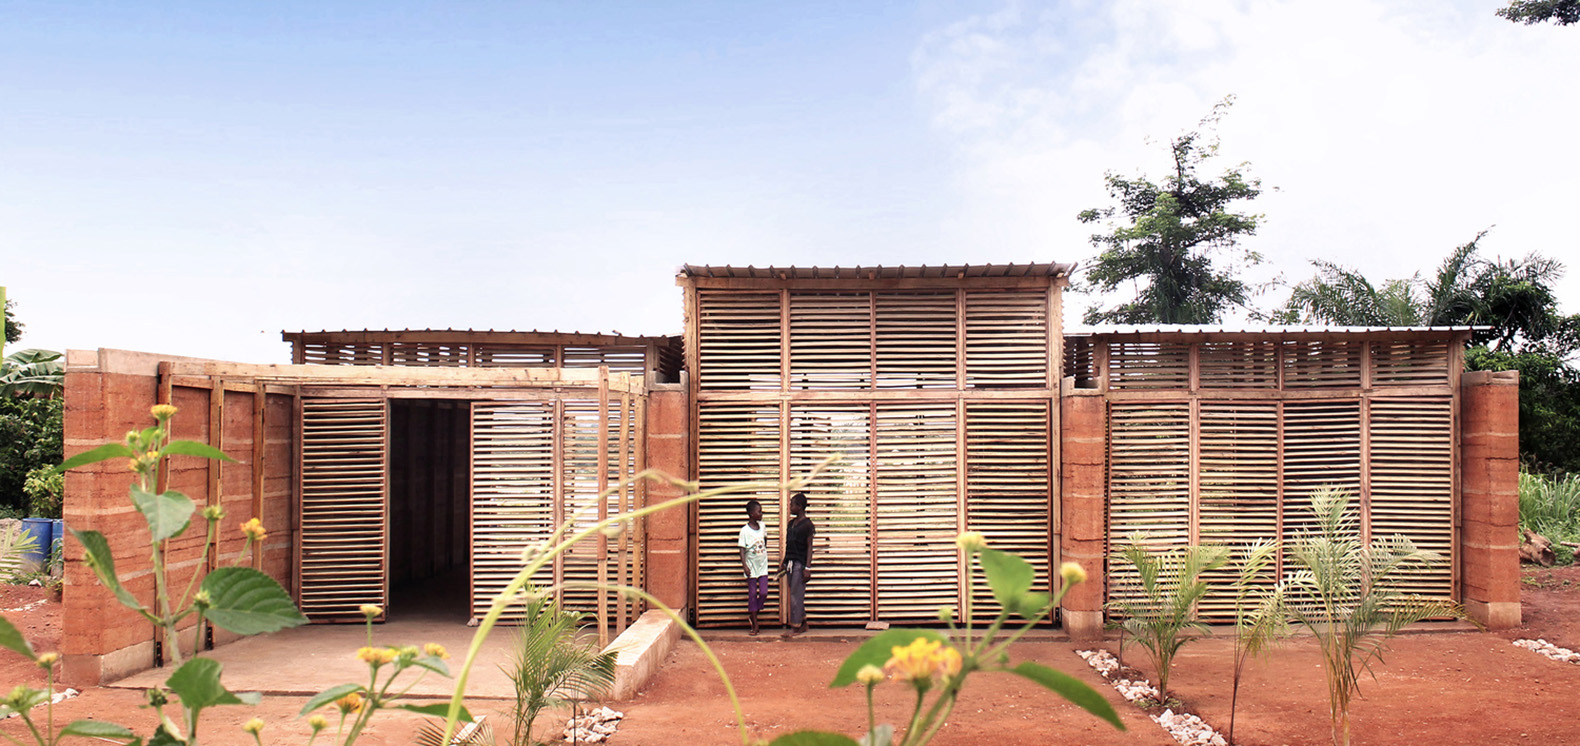 This Rammed Earth School In Ghana School Cost Only $13,976 To Build